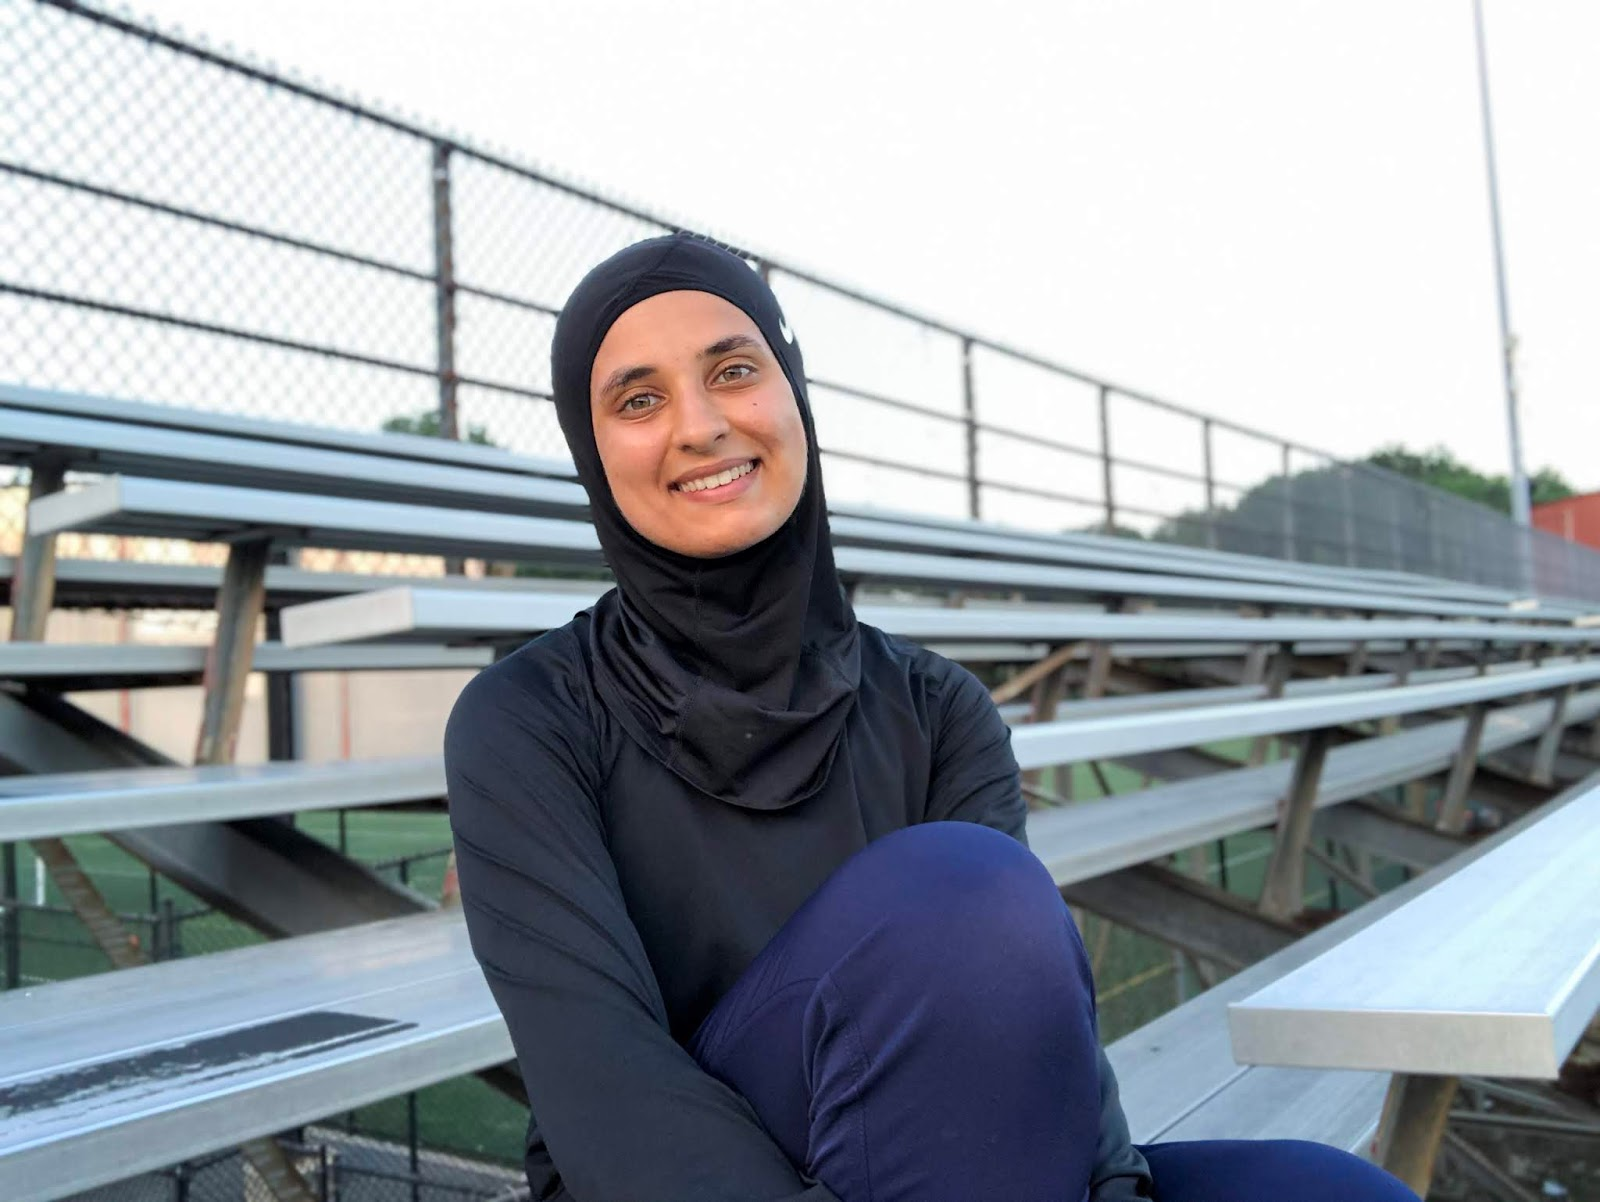 Sahara sitting on a bench at the track, smiling at camera in black nike hijab